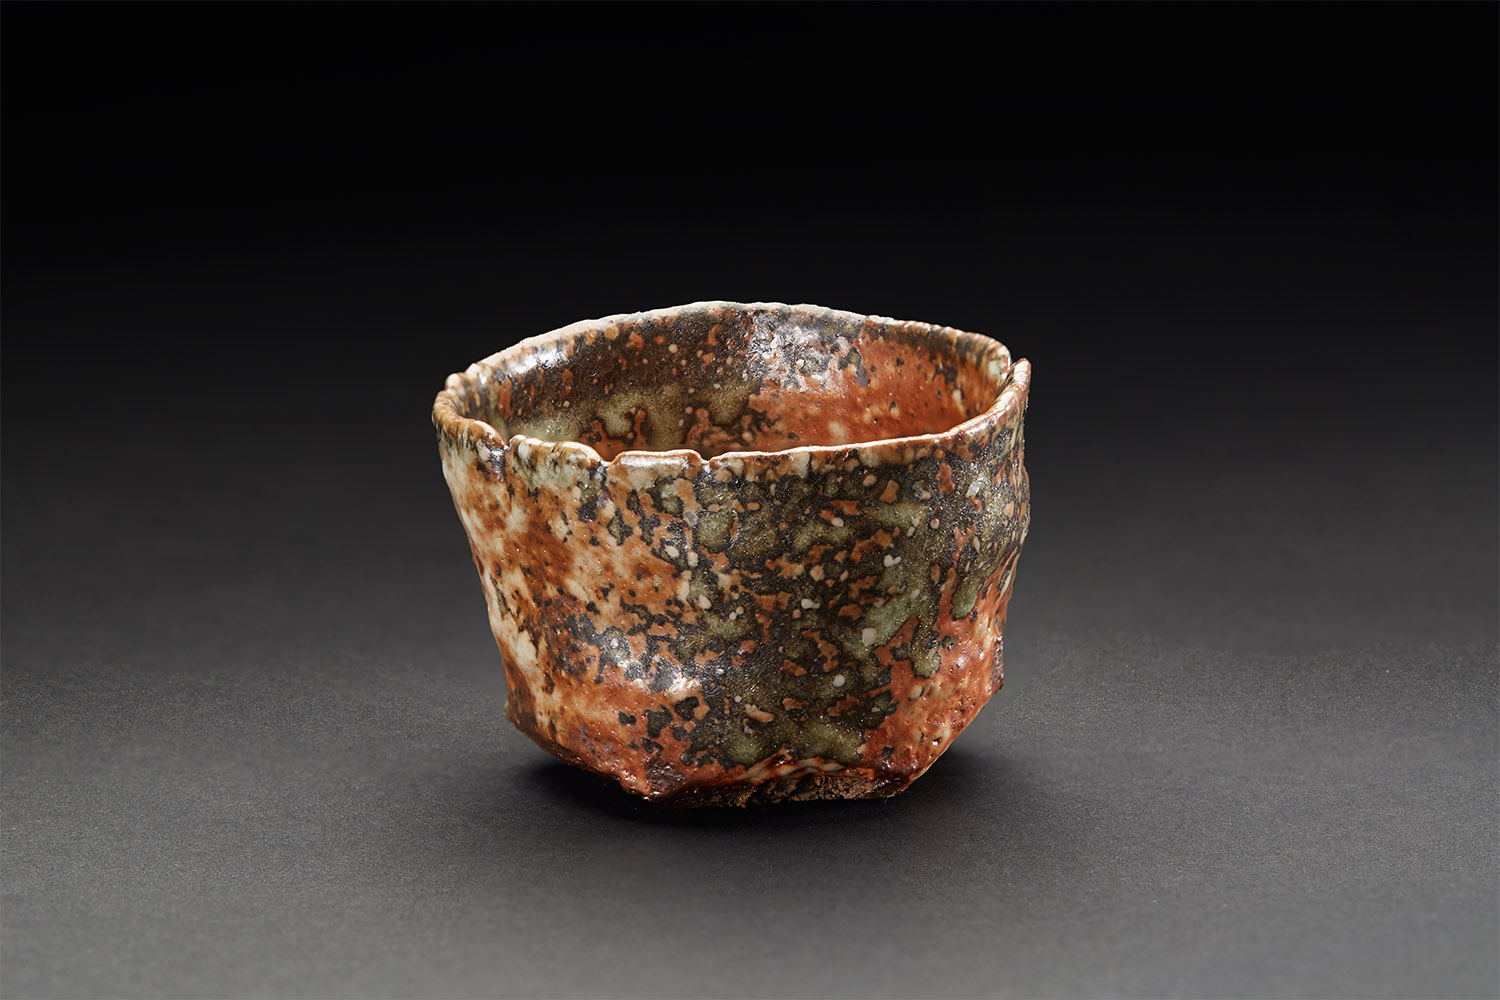 Mike Weber  Guinomi  , 2017 Ceramic, anagama wood-fired for multiple days with shino glaze and natural forming ash glaze 2 x 2.5 x 3 inches 5.1 x 6.4 x 7.6 cm MWe 24